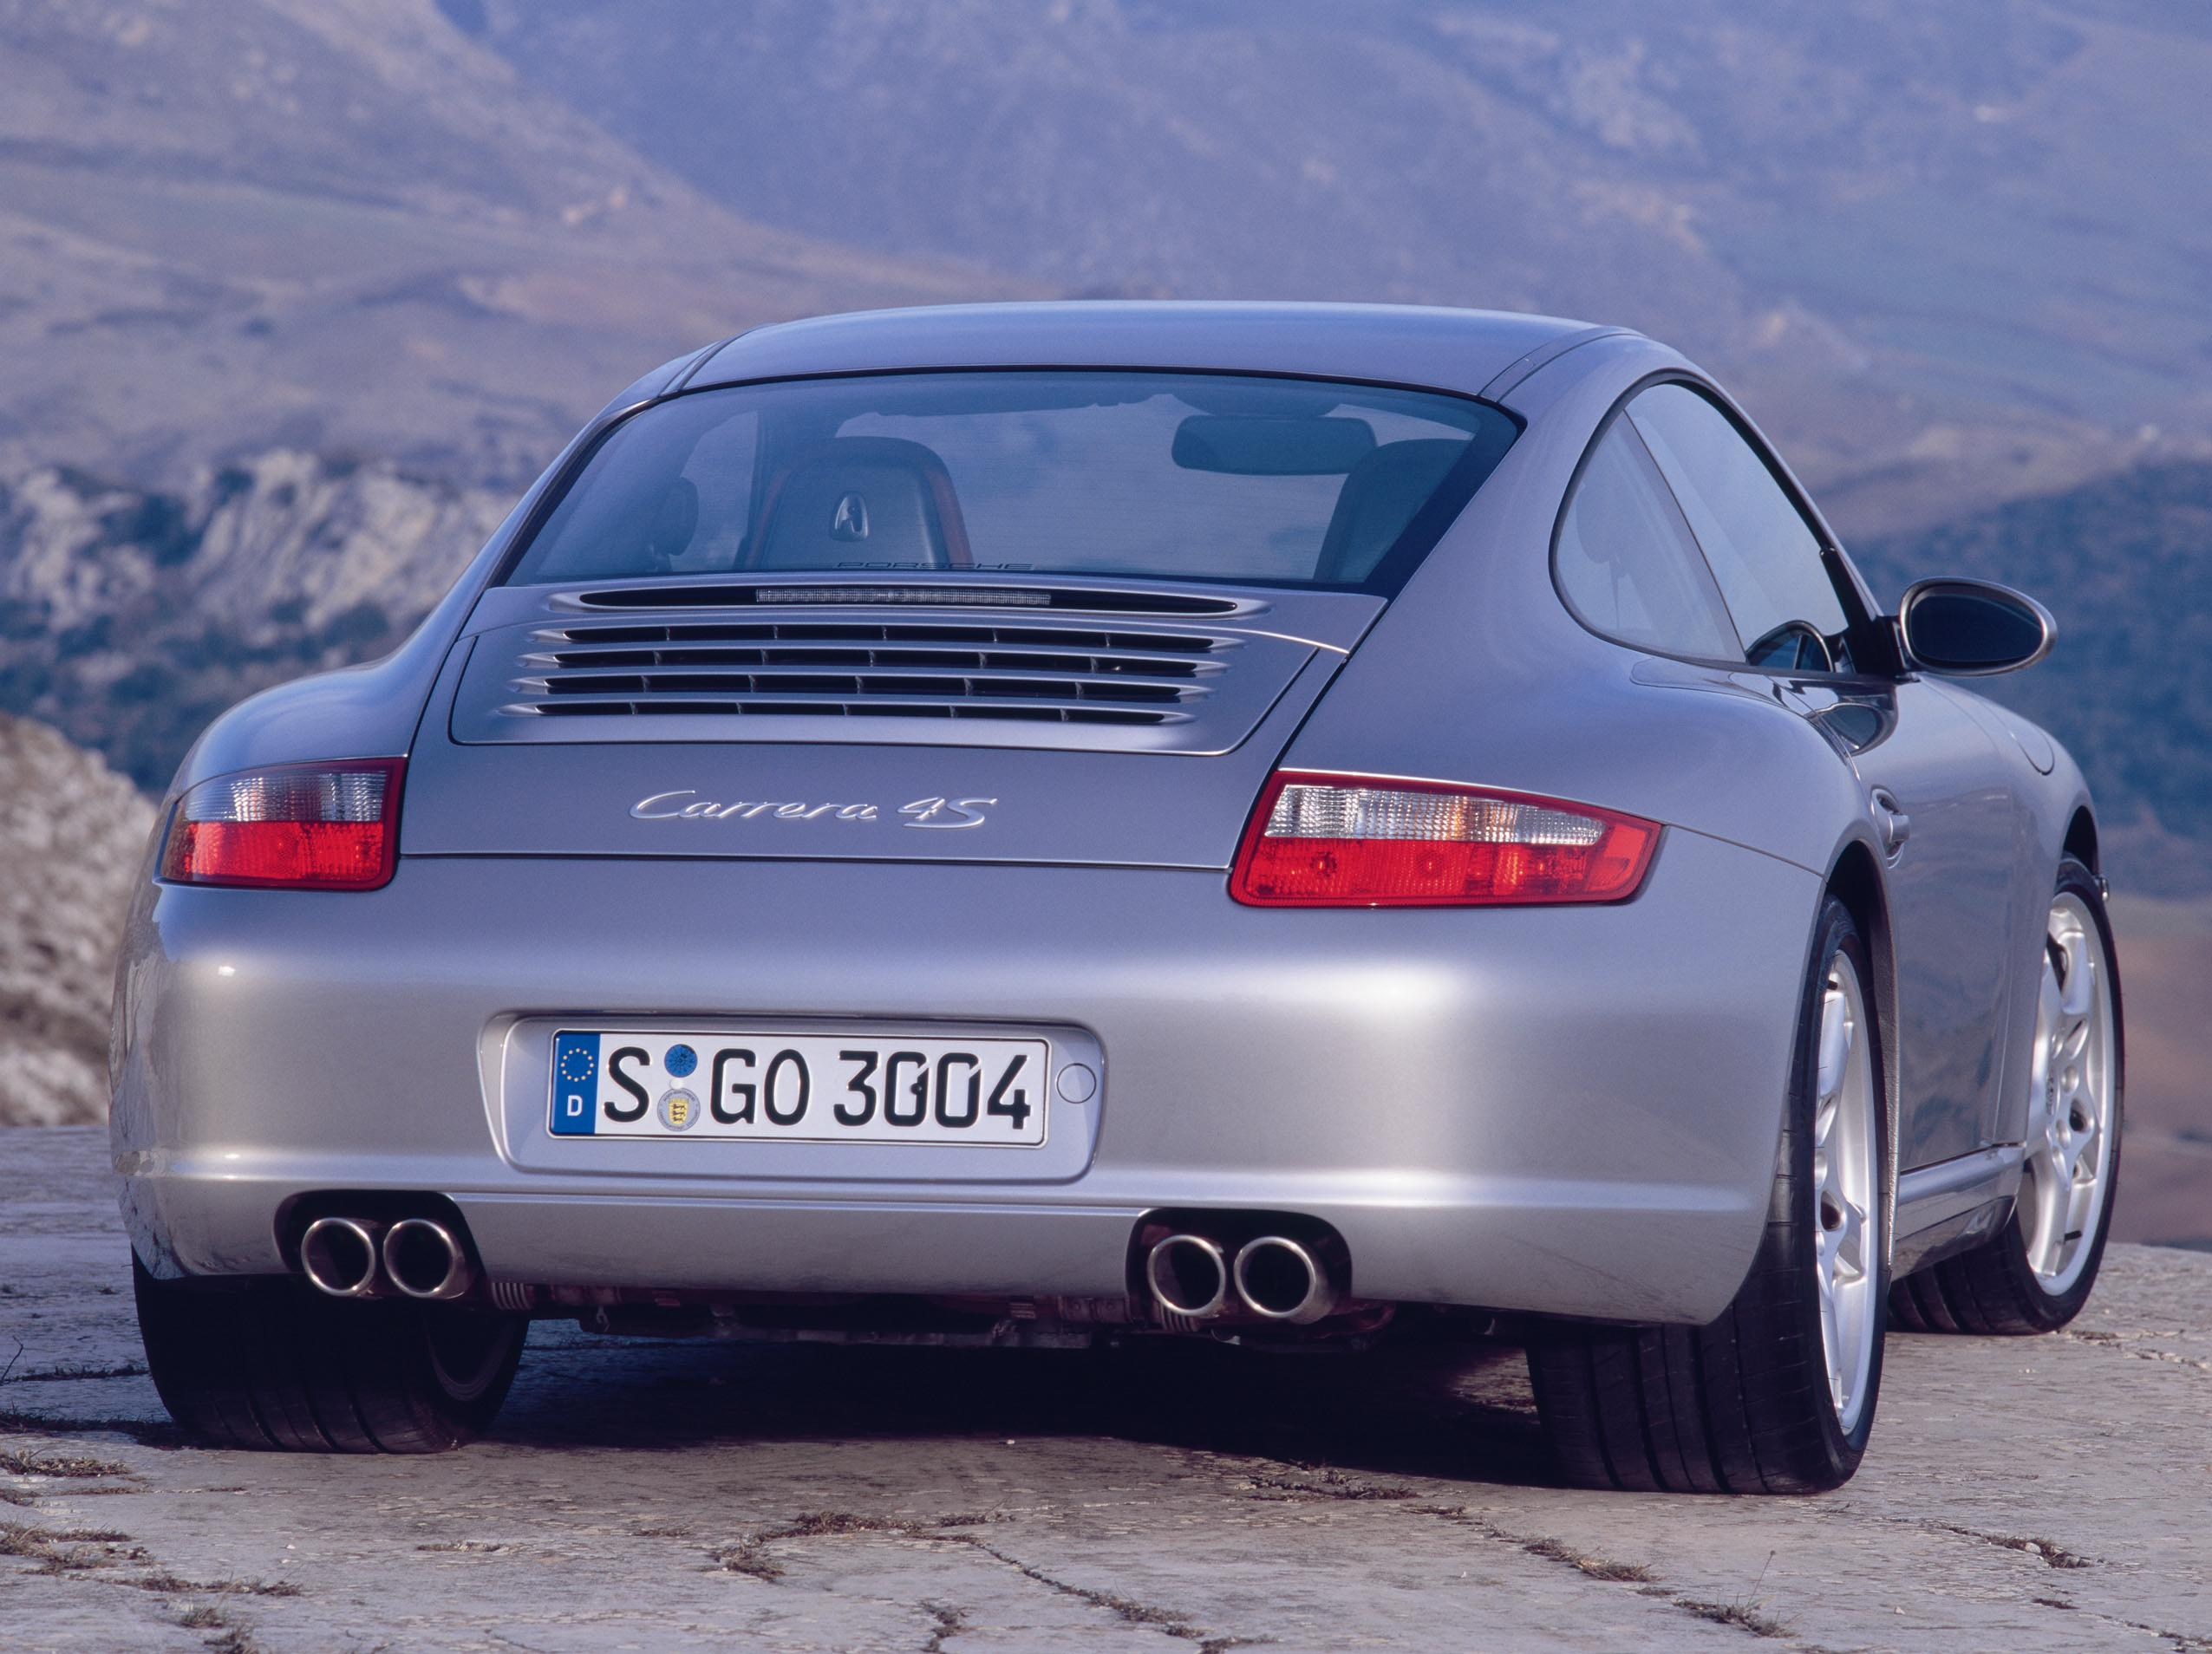 2005 Porsche 911 Carrera 4s 997 Top Speed